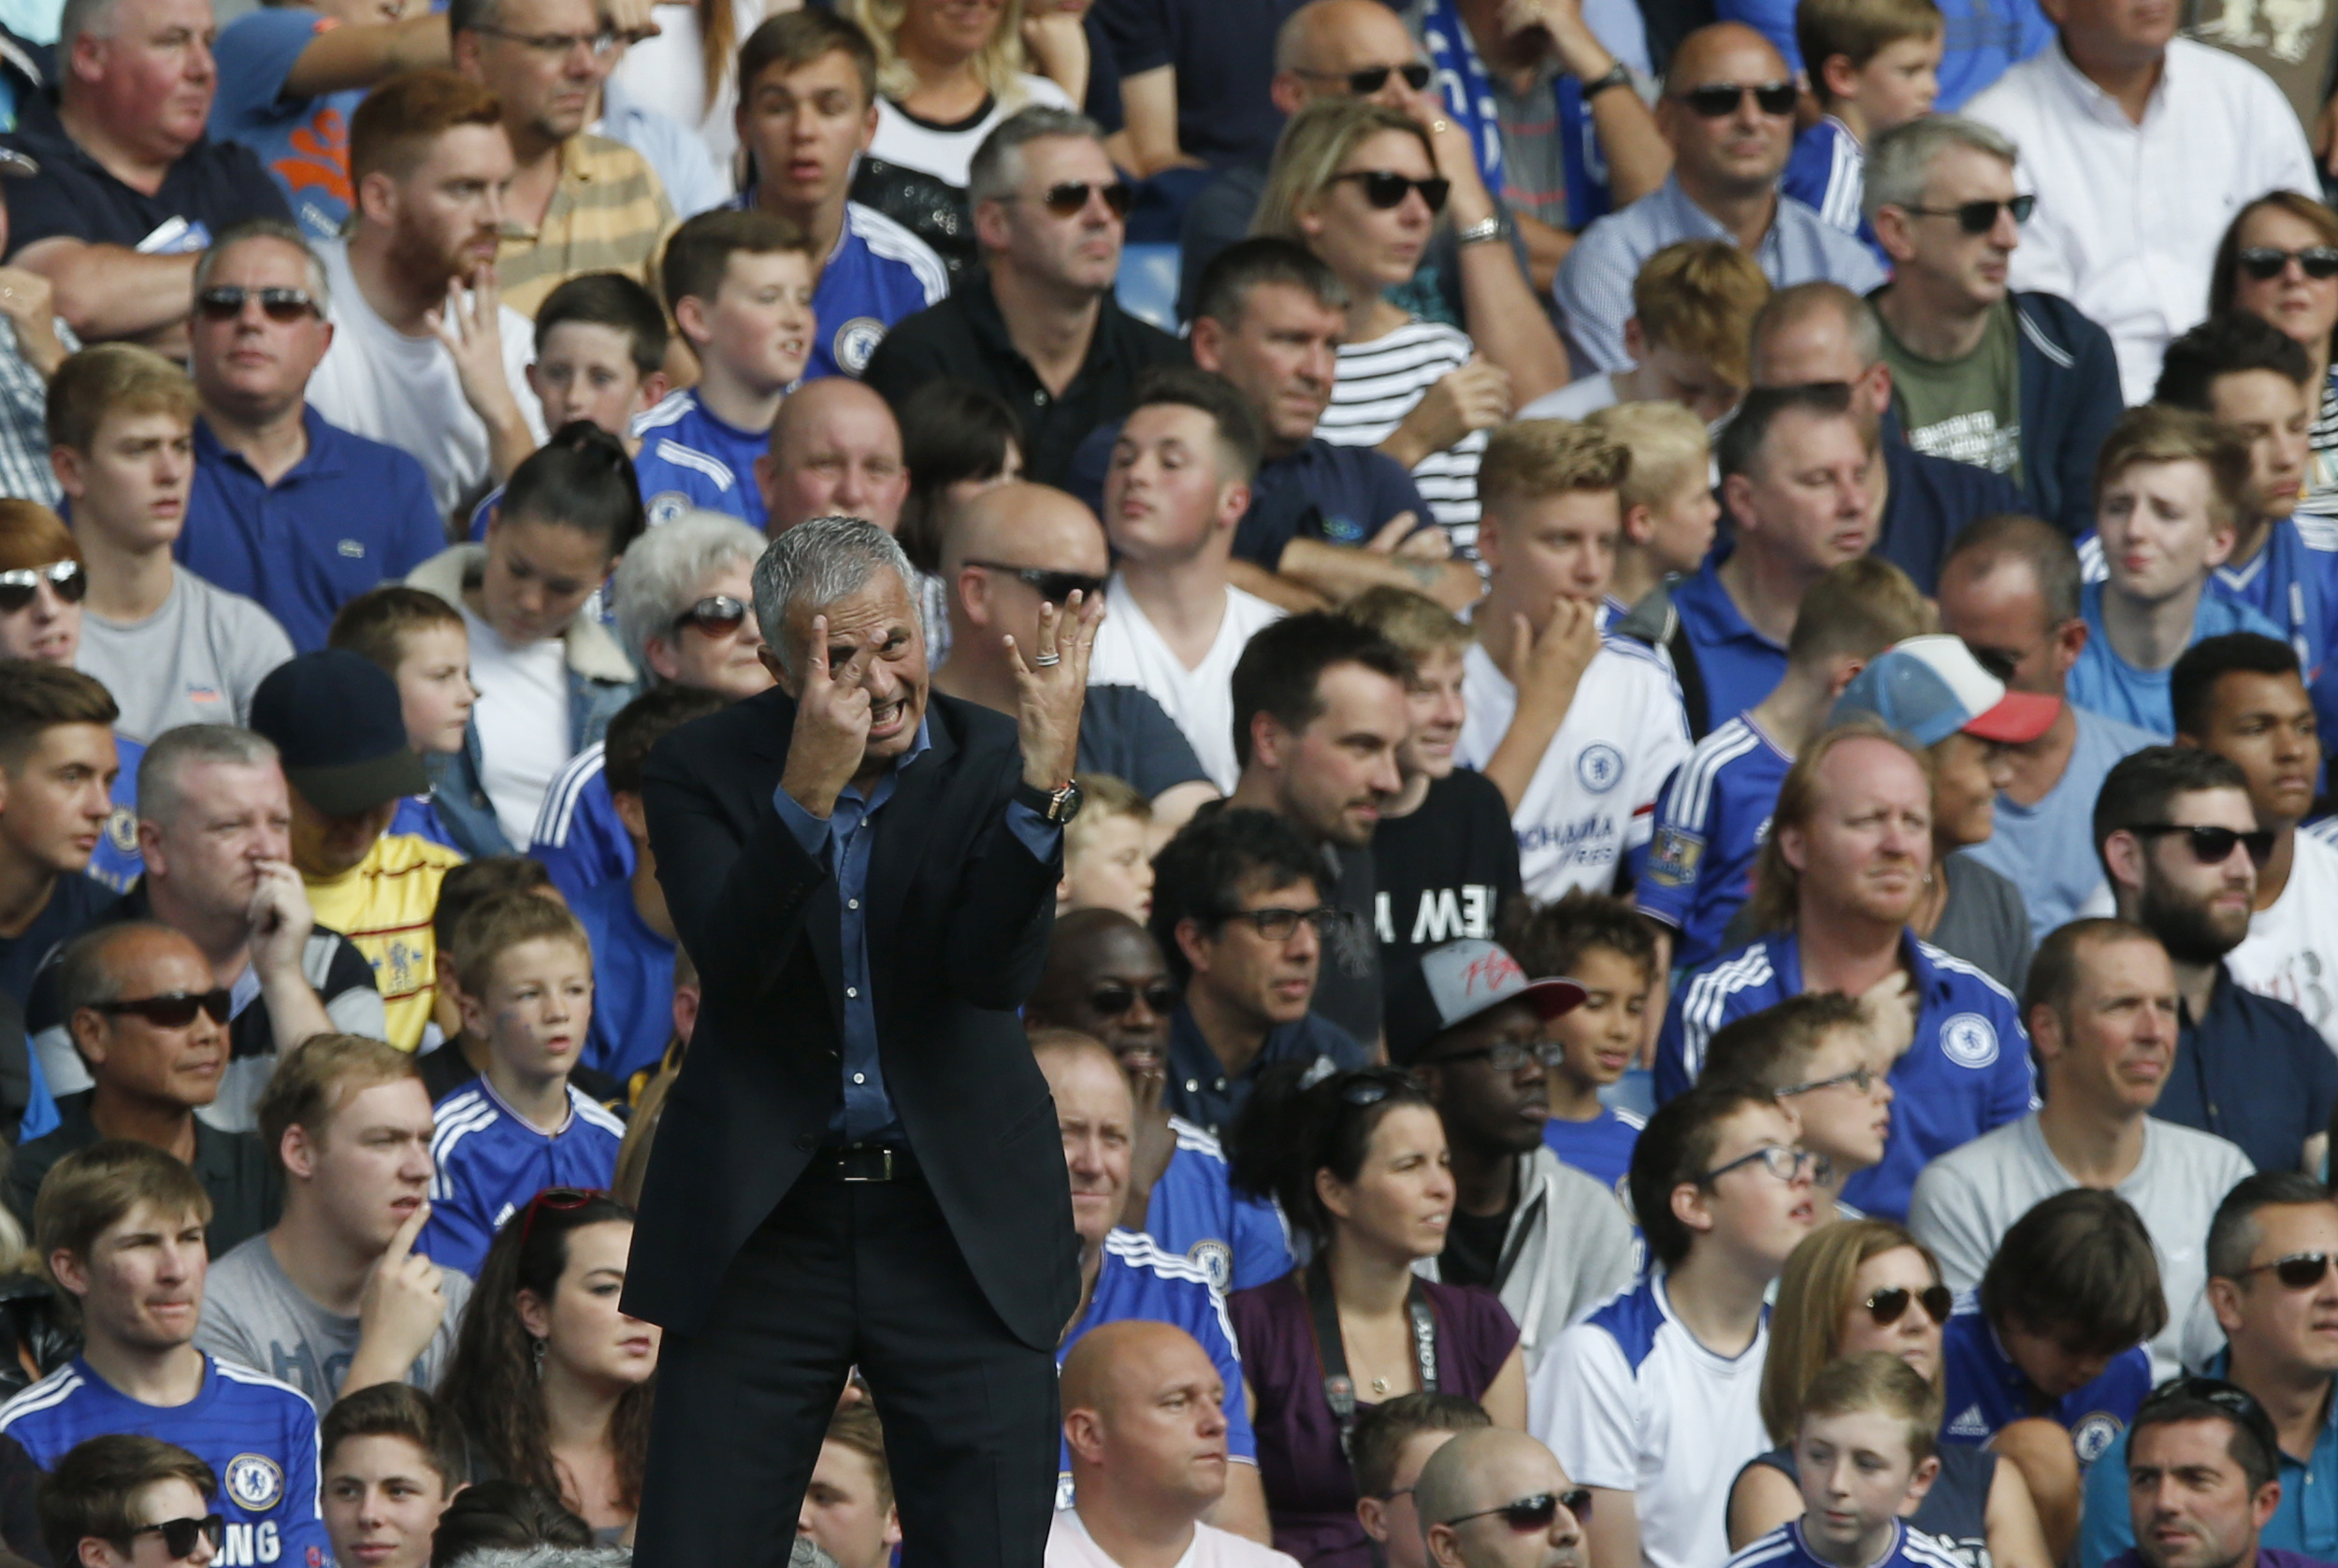 Chelsea manager Jose Mourinho gestures with his hands as he watches his side play during the English Premier League soccer match between Chelsea and Arsenal at Stamford Bridge stadium in London, Saturday, Sept. 19, 2015. Chelsea won the match 2-0.(AP Photo/Alastair Grant)